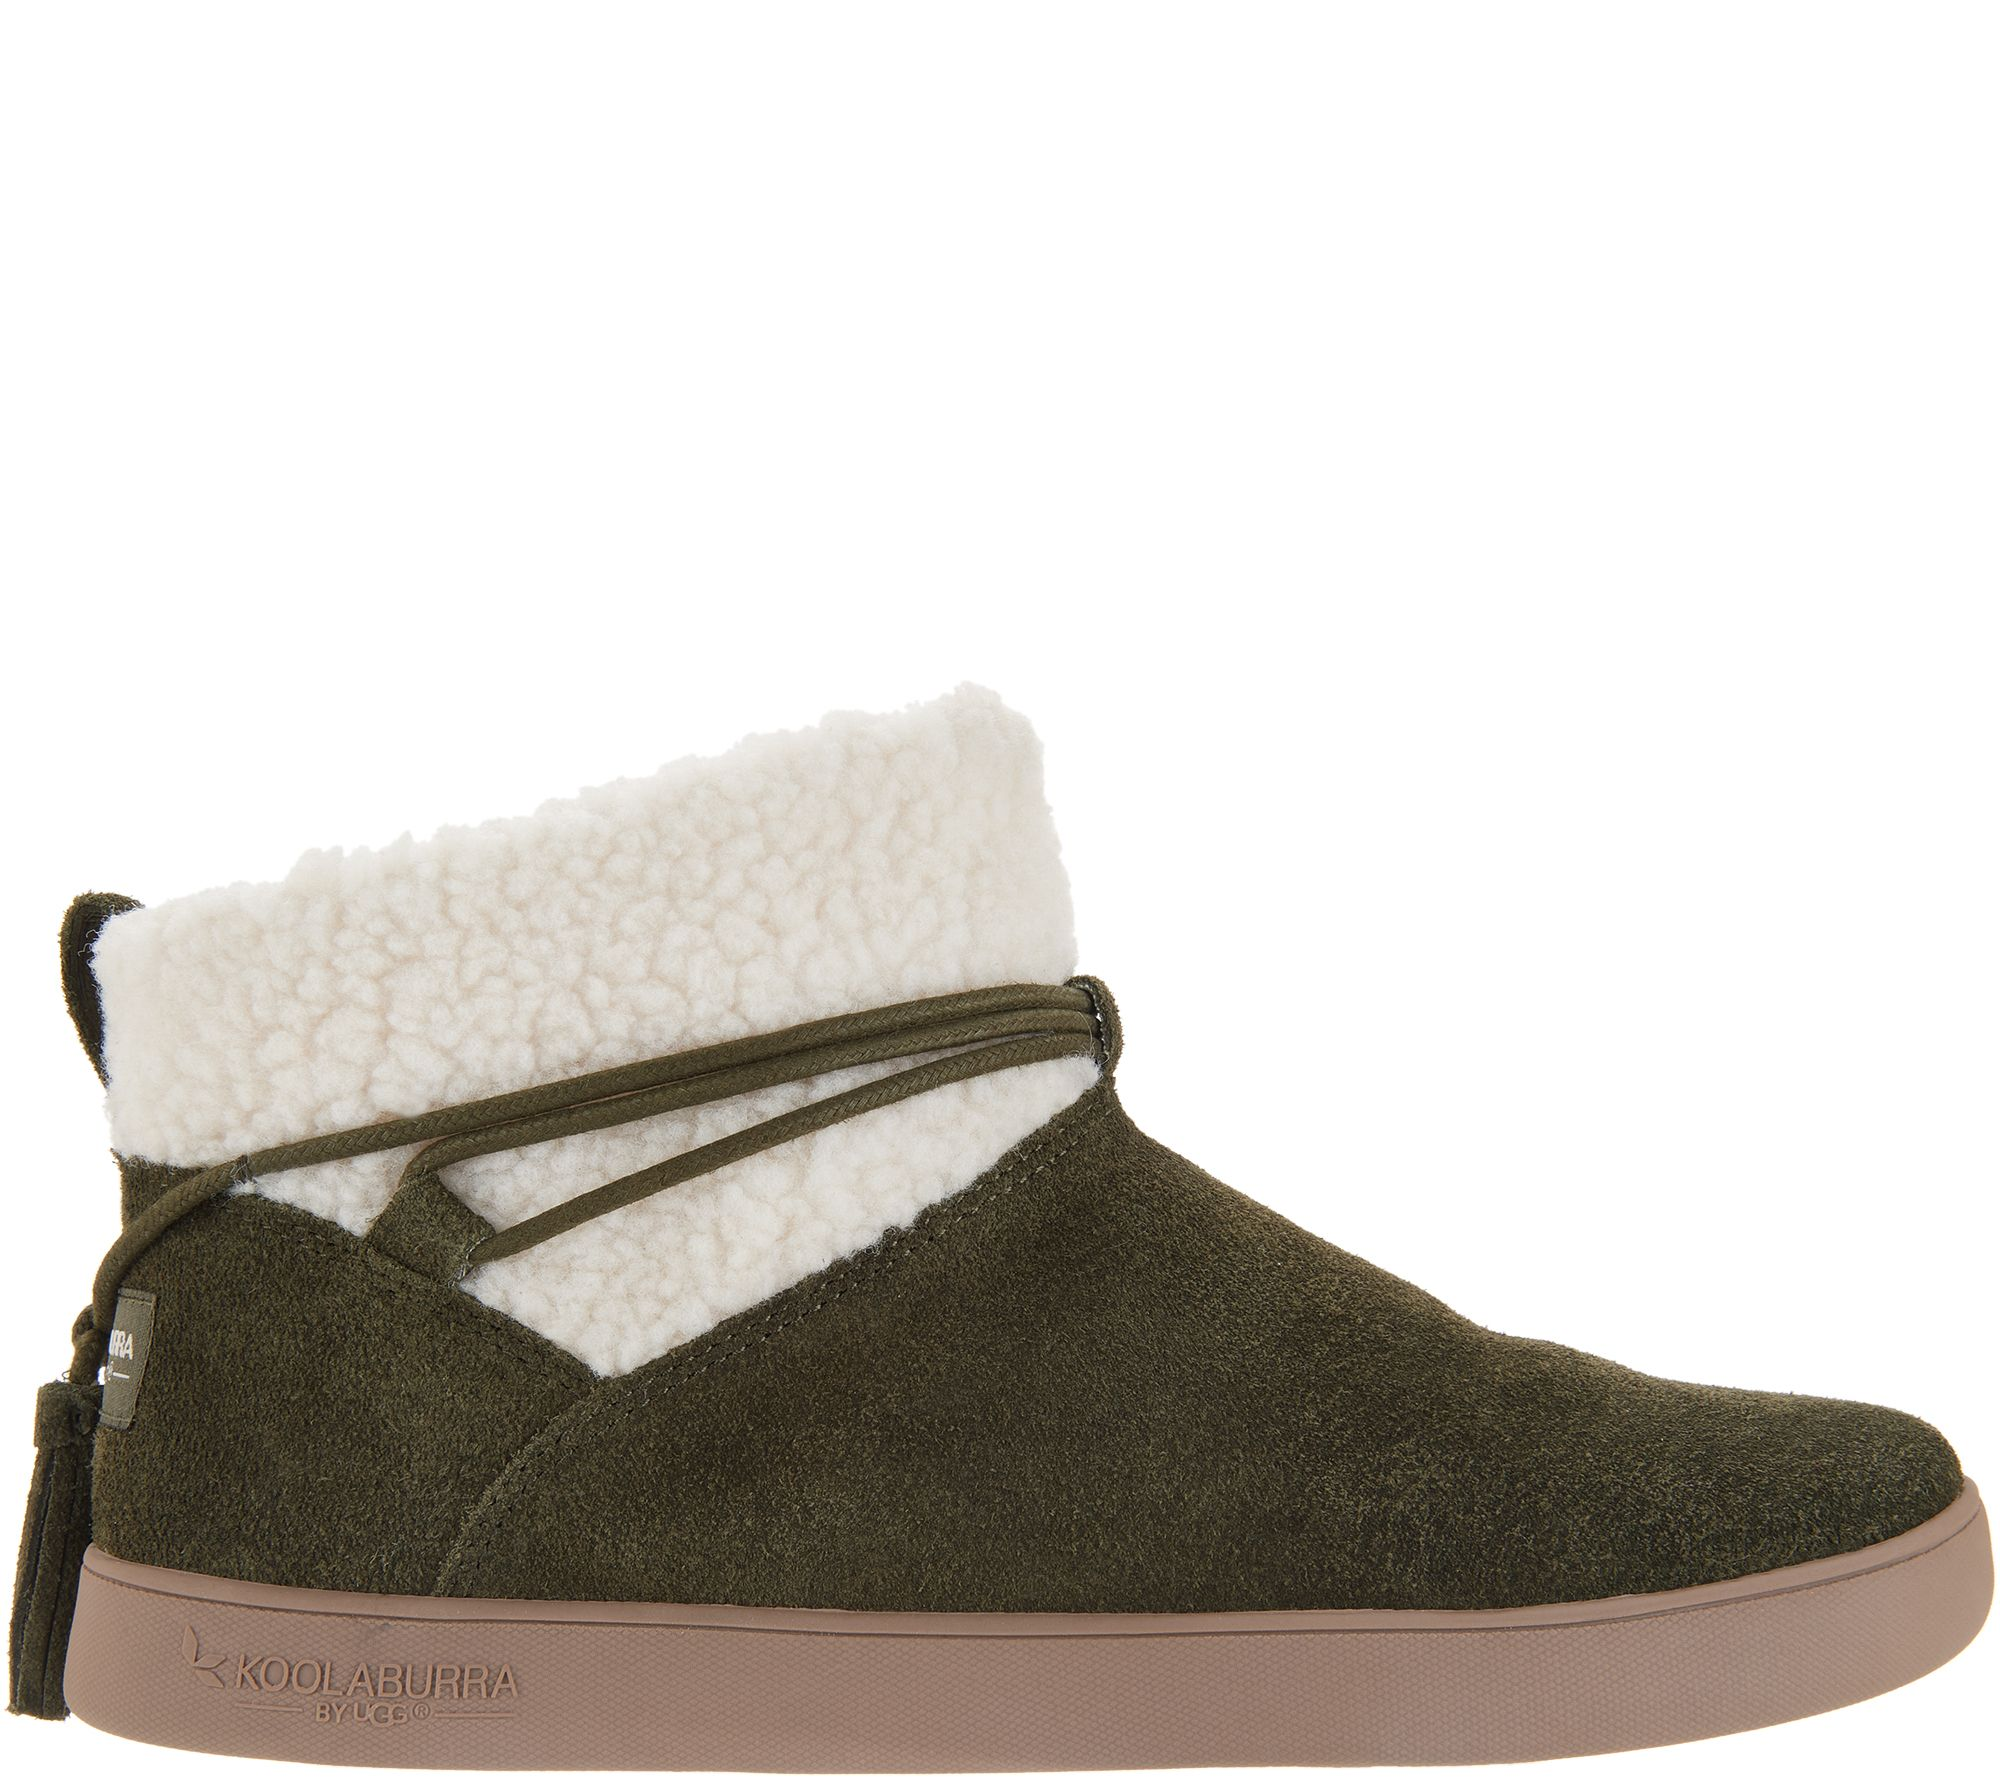 4568cd90a13 Koolaburra by UGG Faux Fur Ankle Boots with Tie - Isana — QVC.com